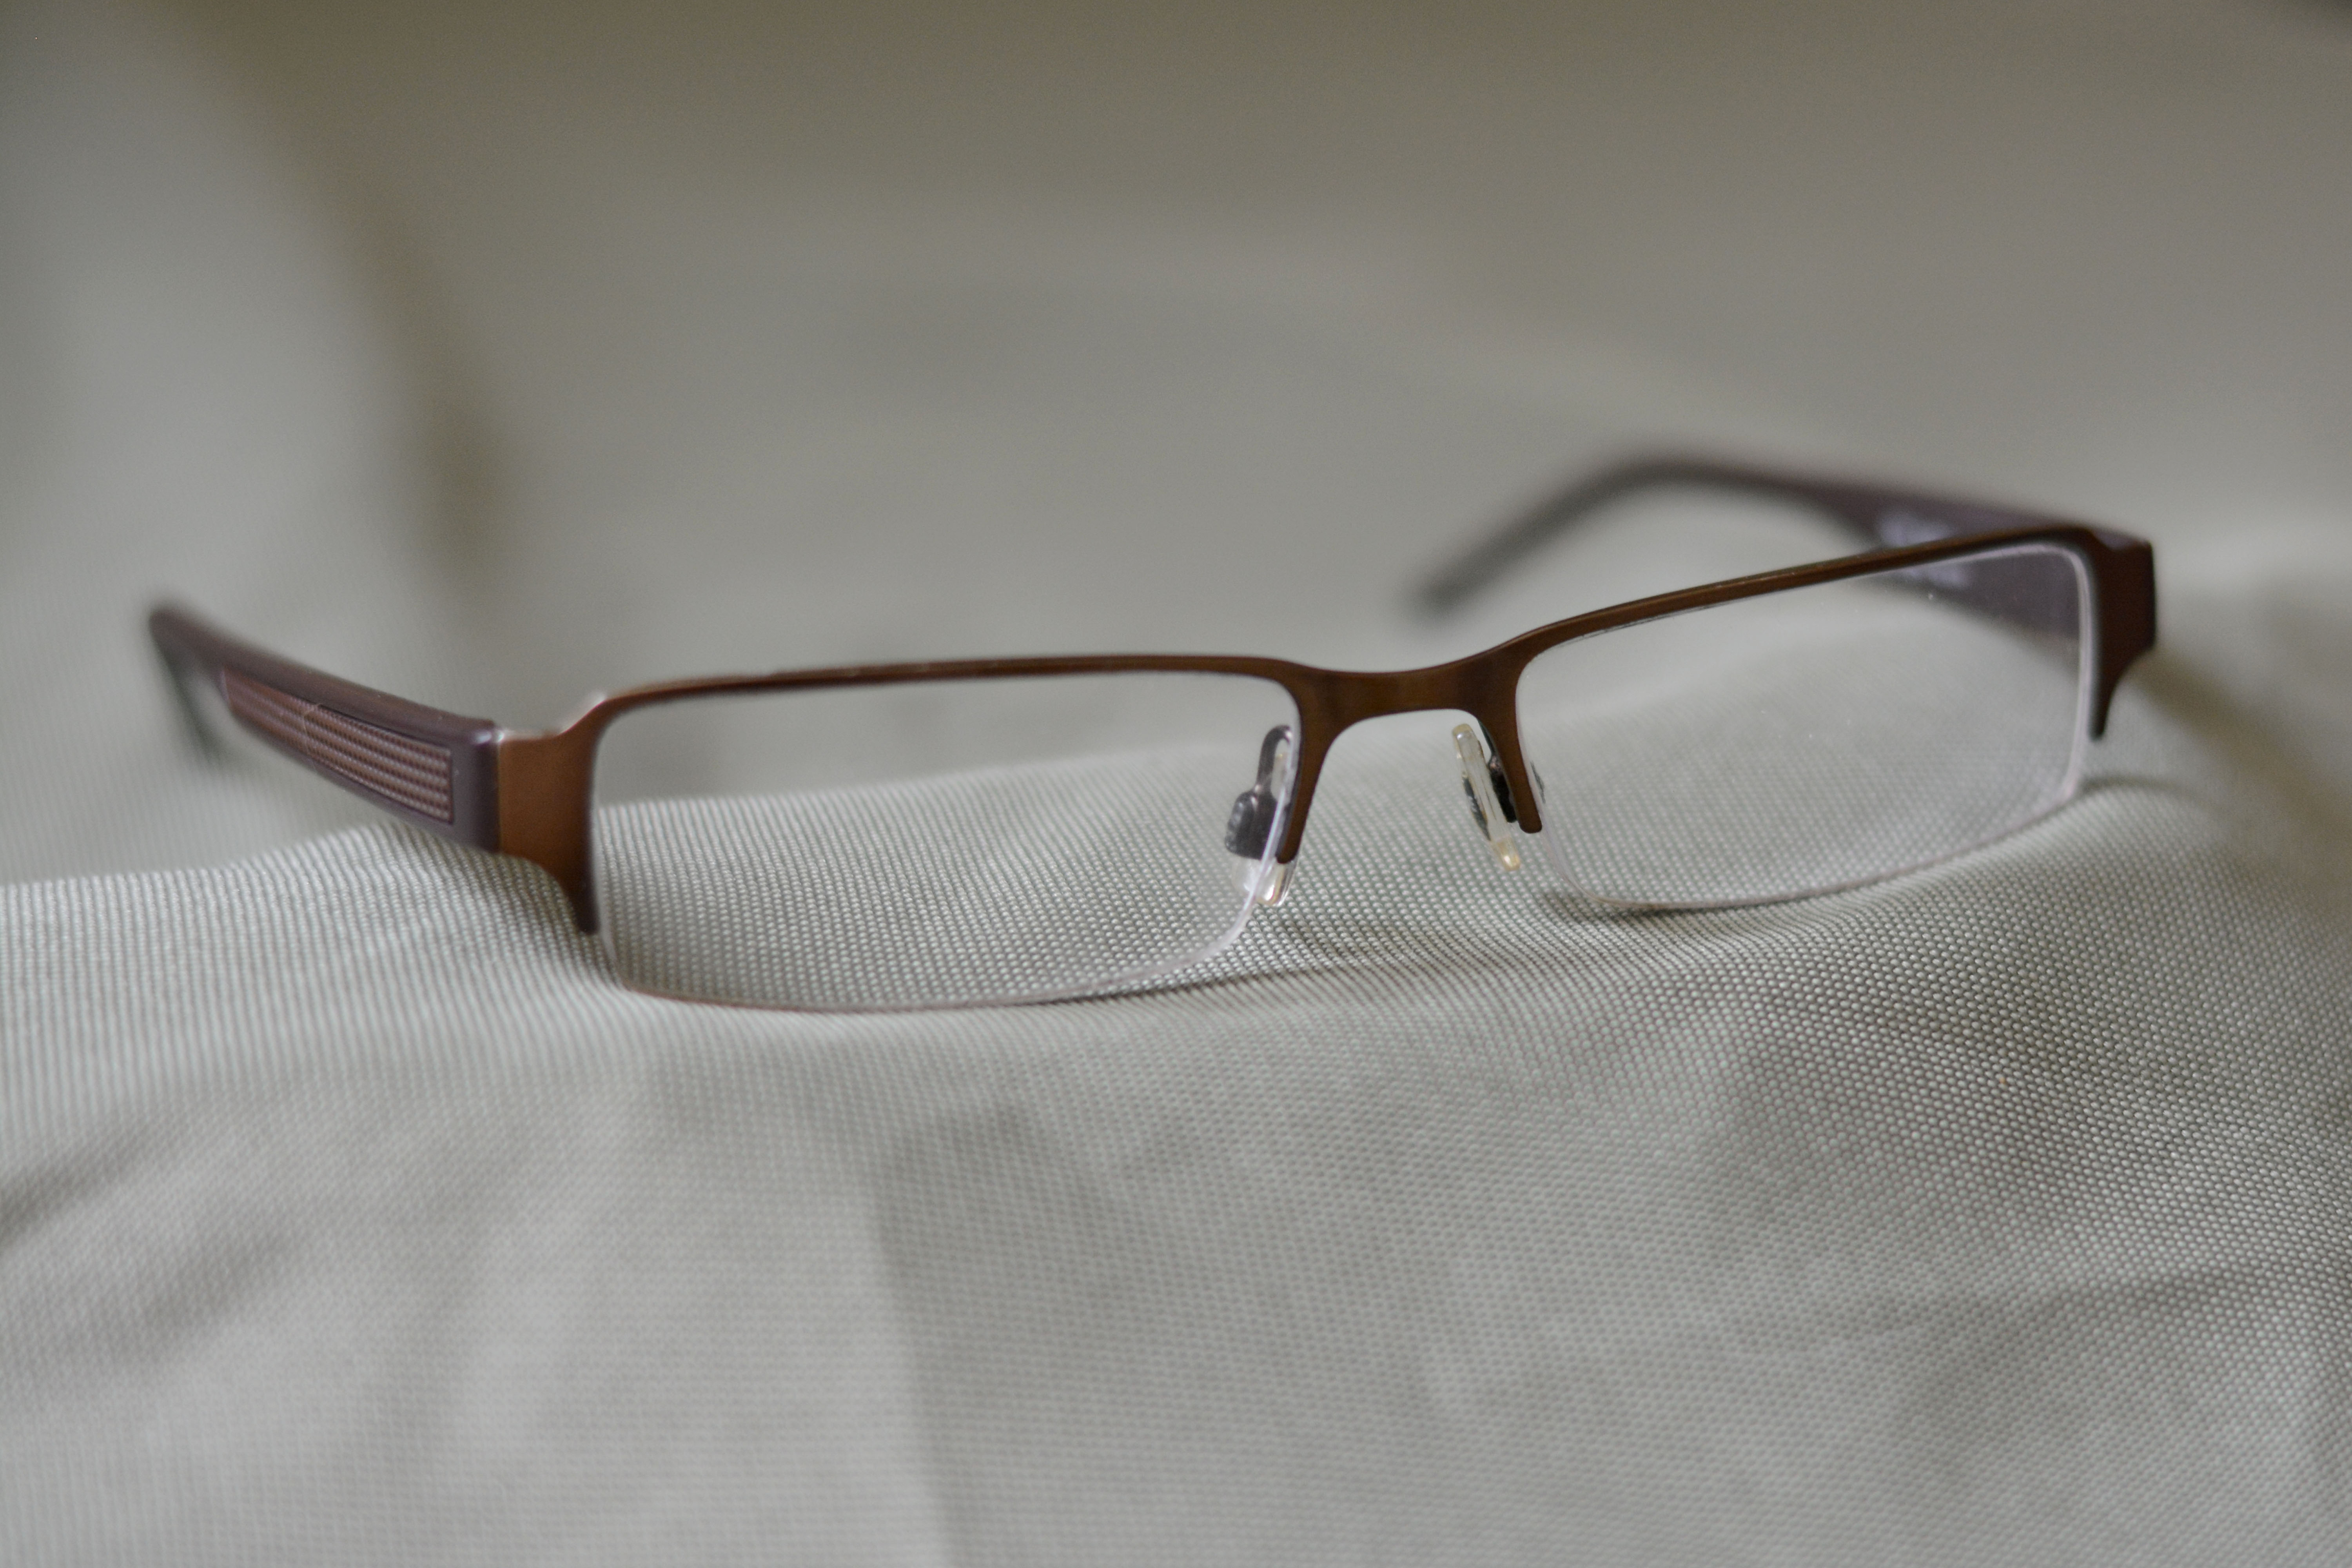 Types of Eye Glasses for Someone Nearsighted LIVESTRONG.COM